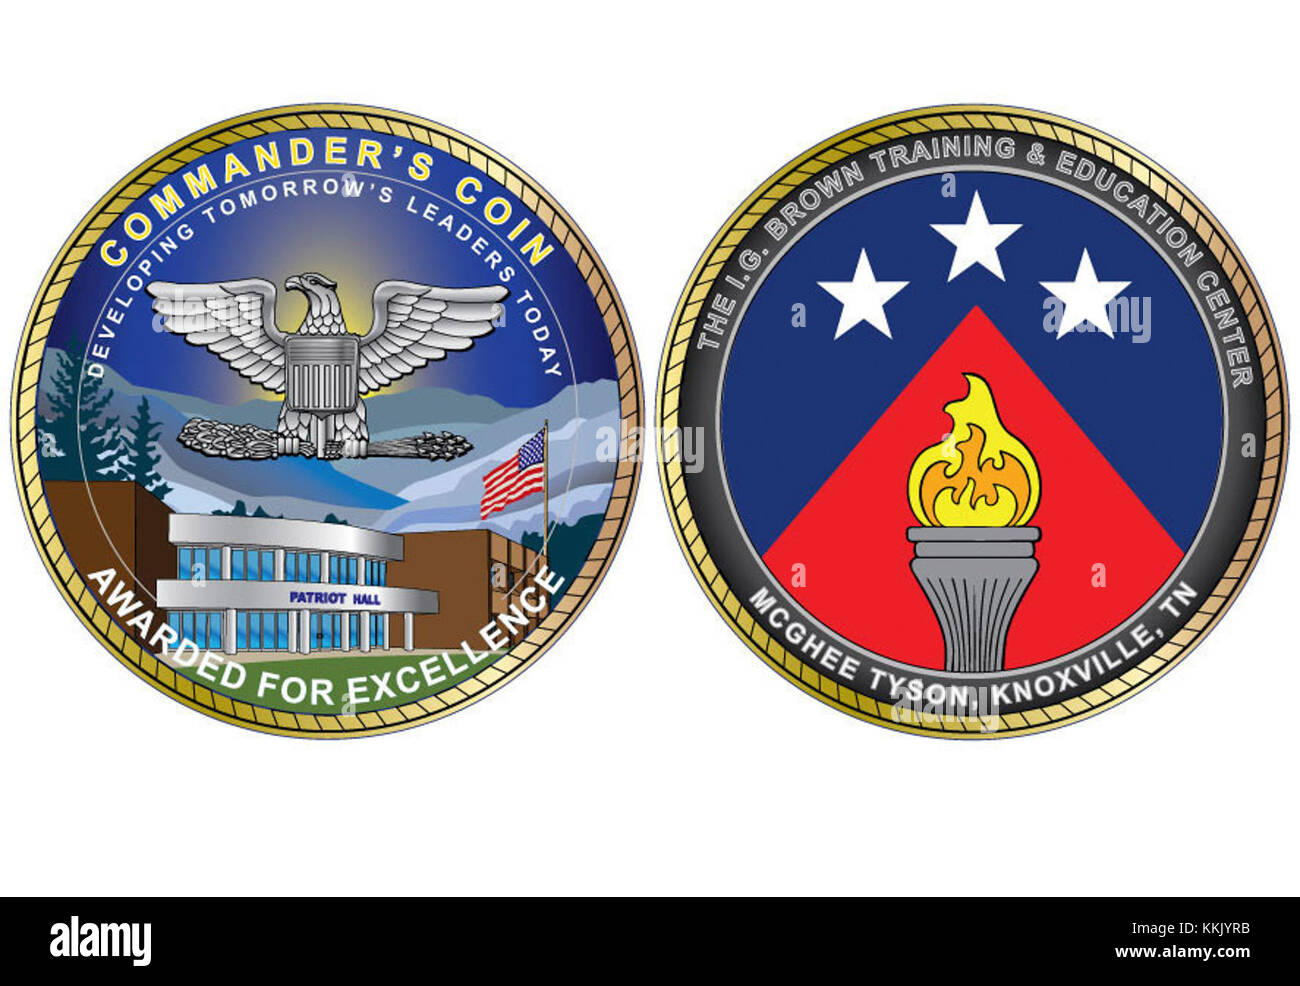 Front And Back View Of The New Commander S Coin For The Training And Stock Photo